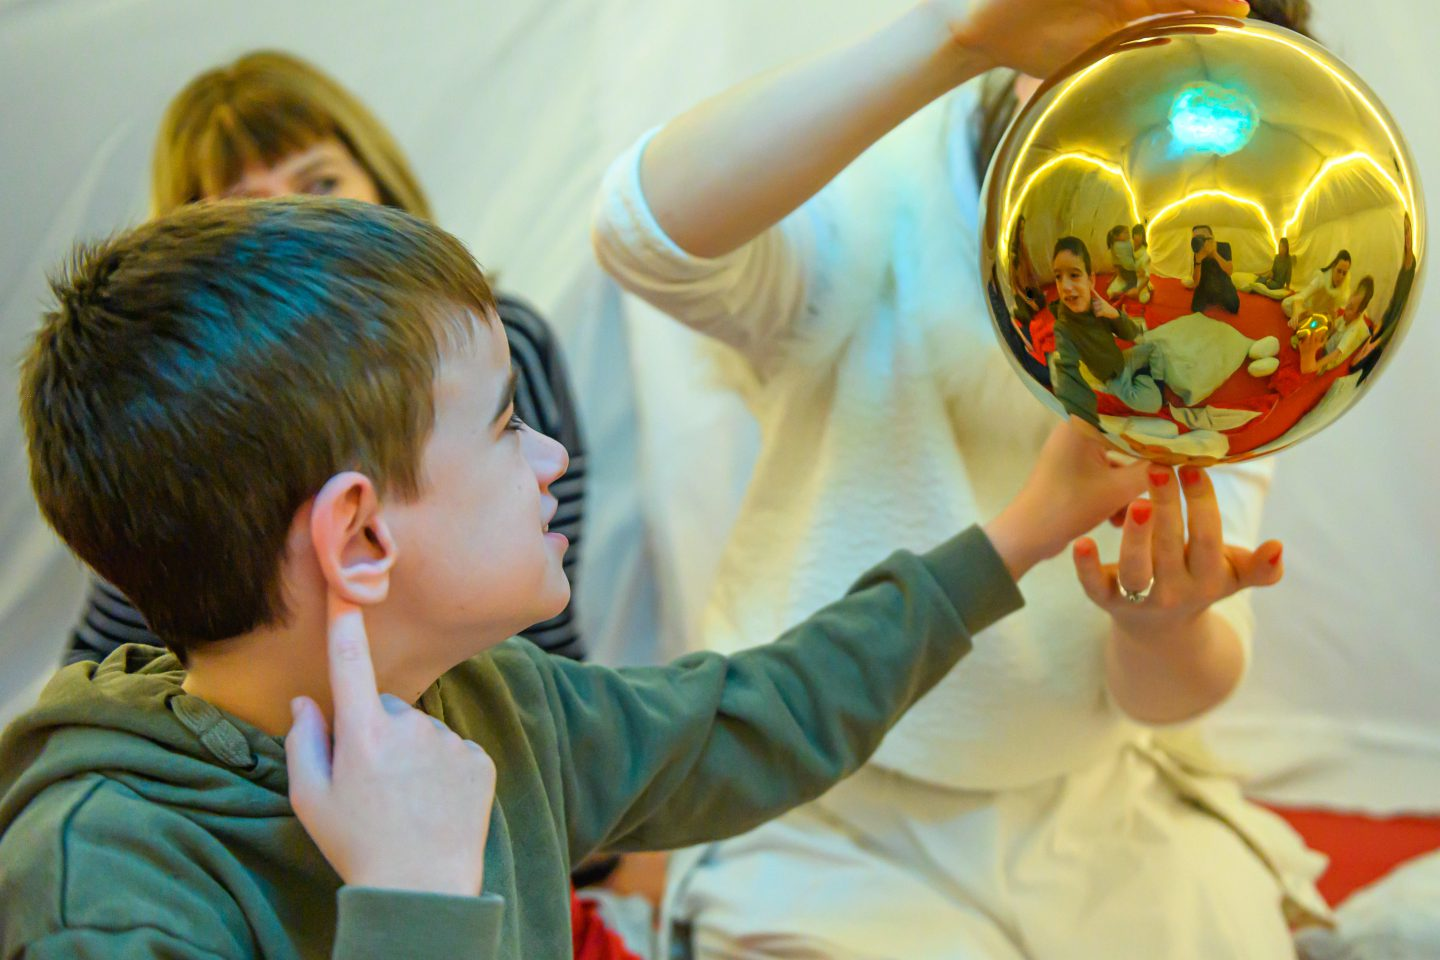 Little Tiny Xmas - a young boy reaches out to touch a giant gold bauble that a performer is holding. other audience members and performers can be seen in the reflection of the bauble